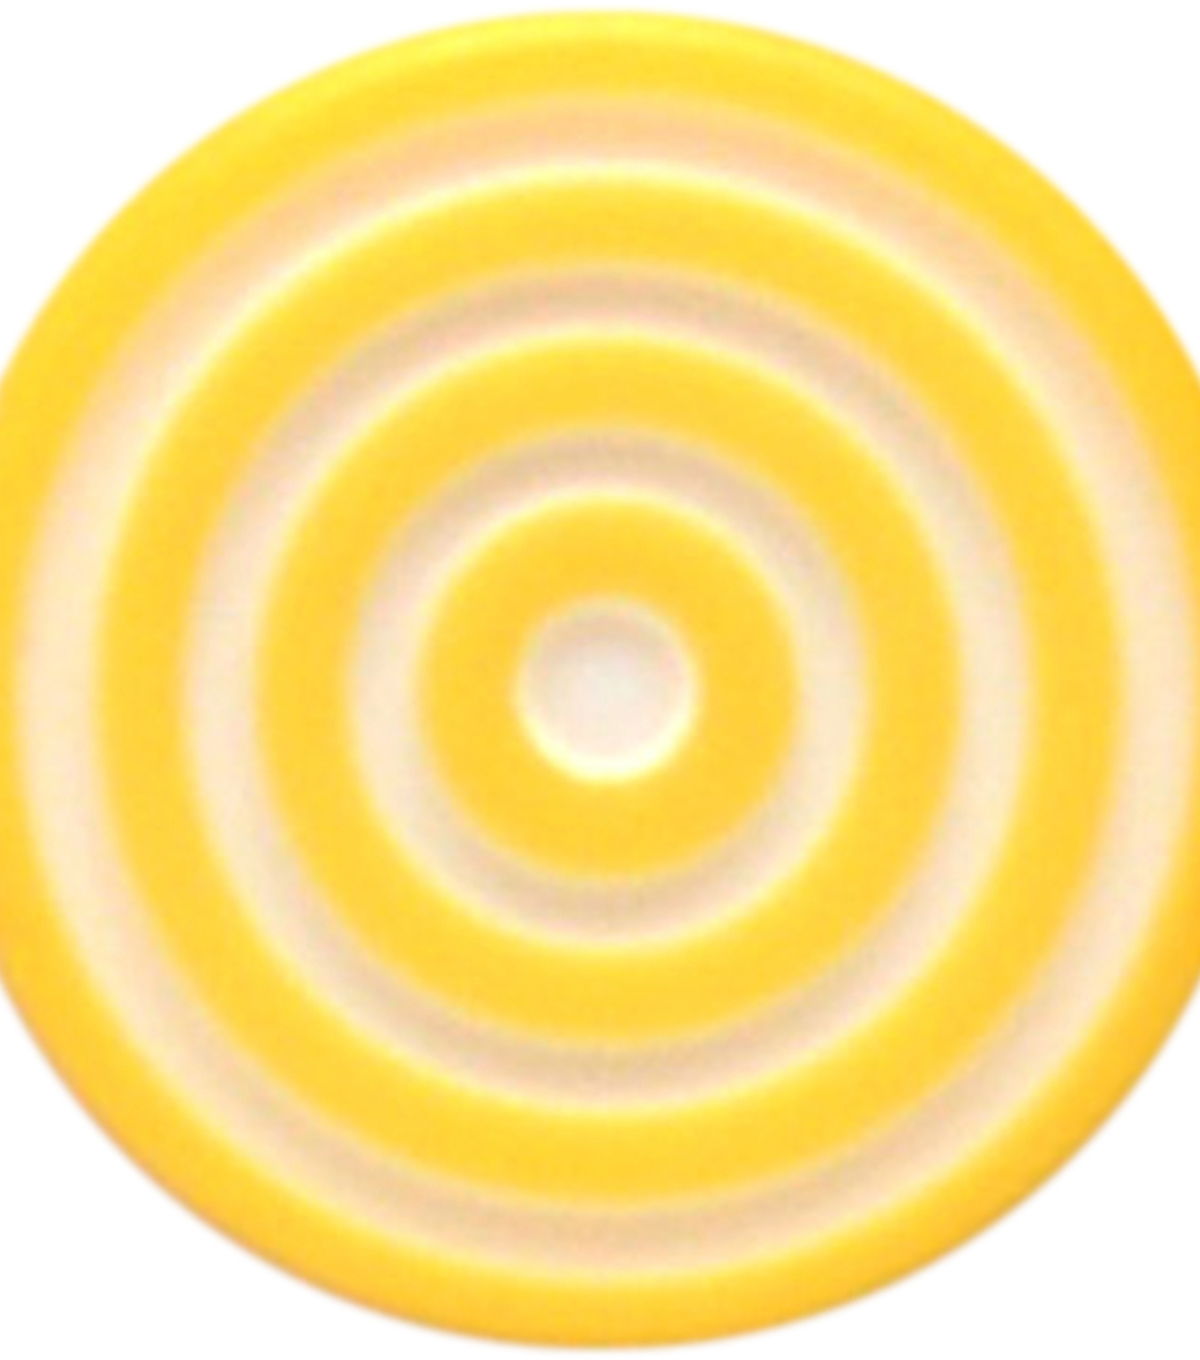 Queen & Co. 12 pk Lollies Self-Adhesive Embellishments-Yellow